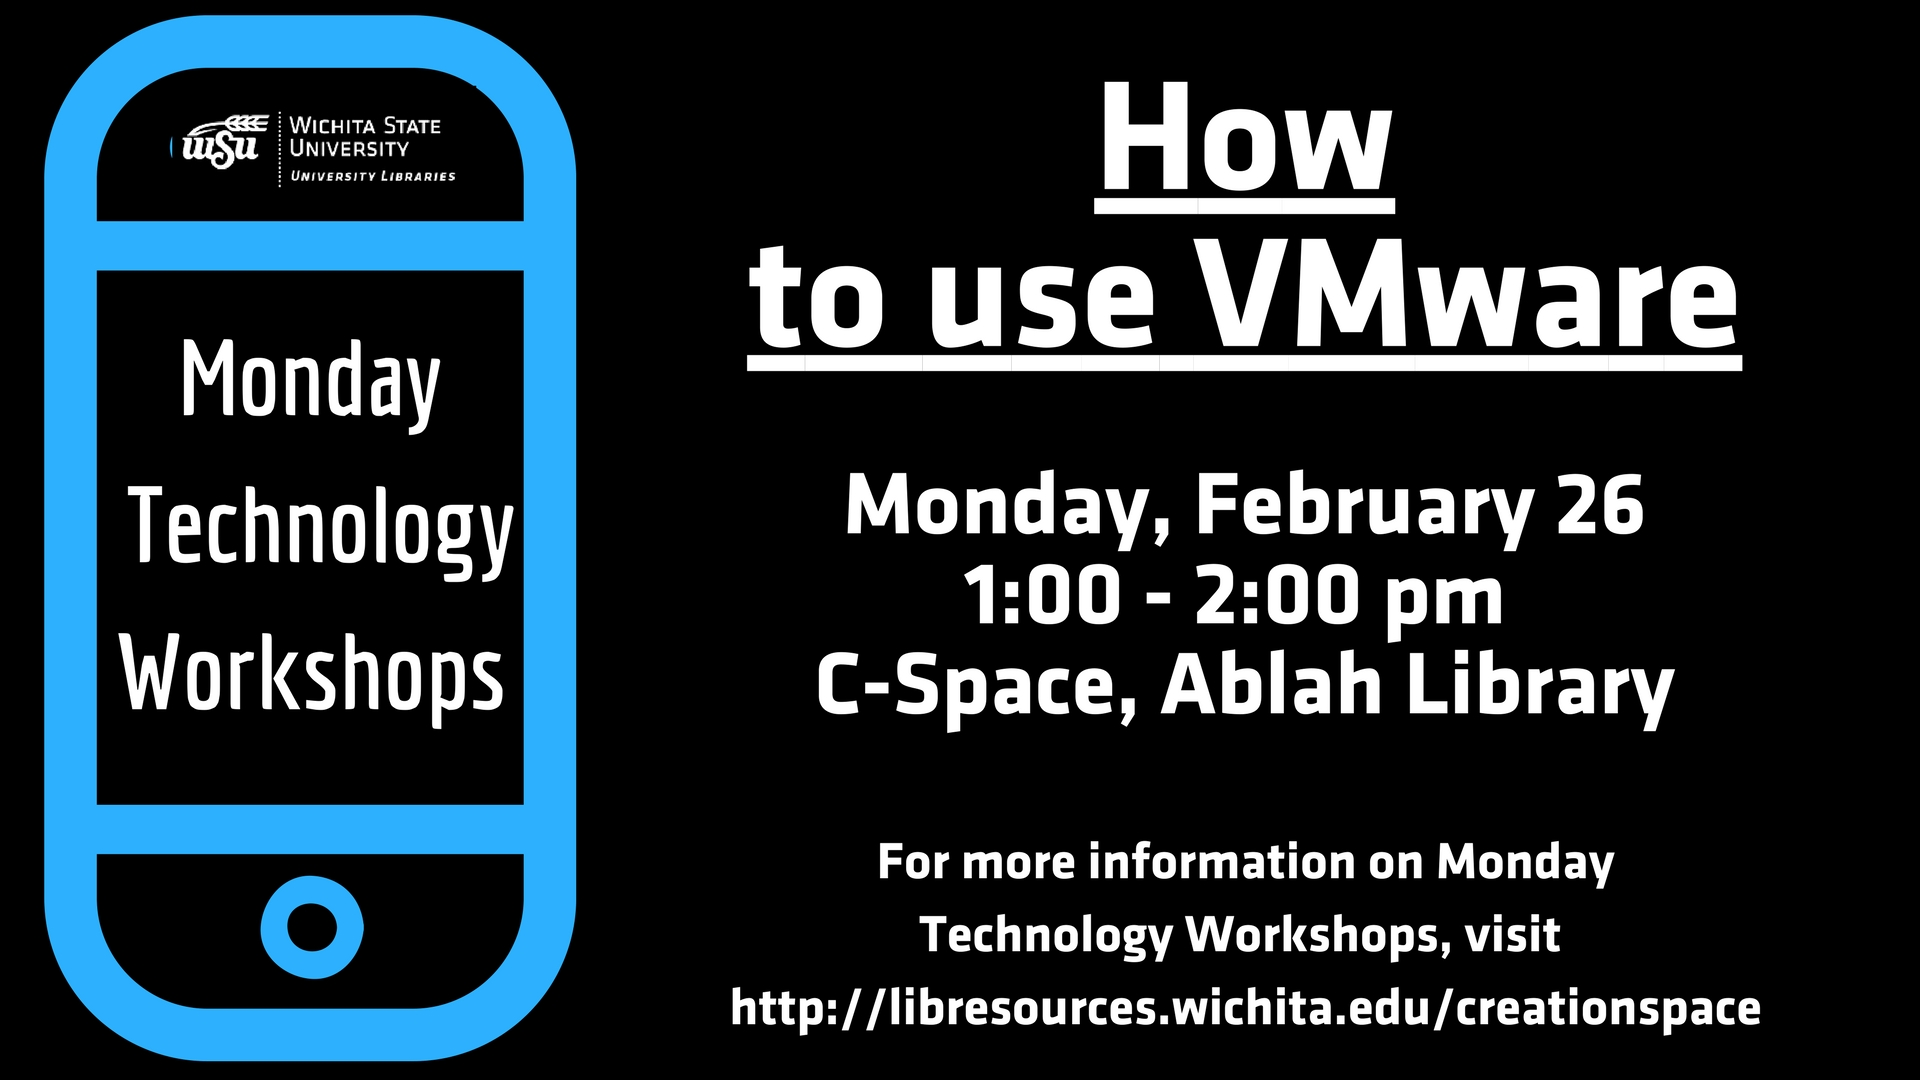 Monday Technology Workshop - VMware